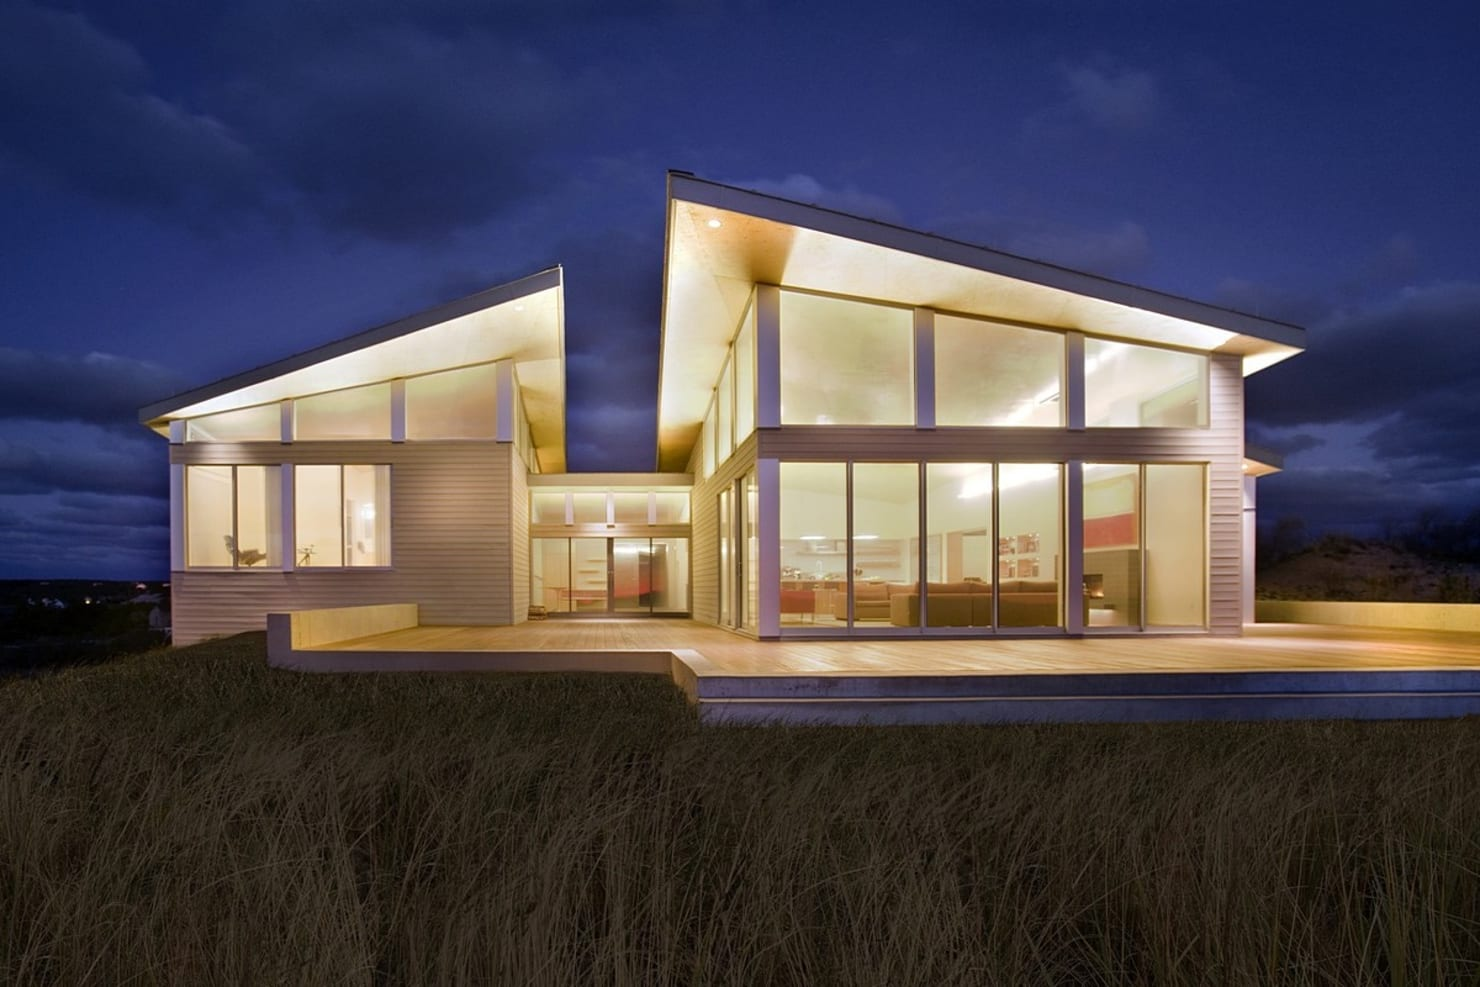 The eco-friendly beach house of your dreams